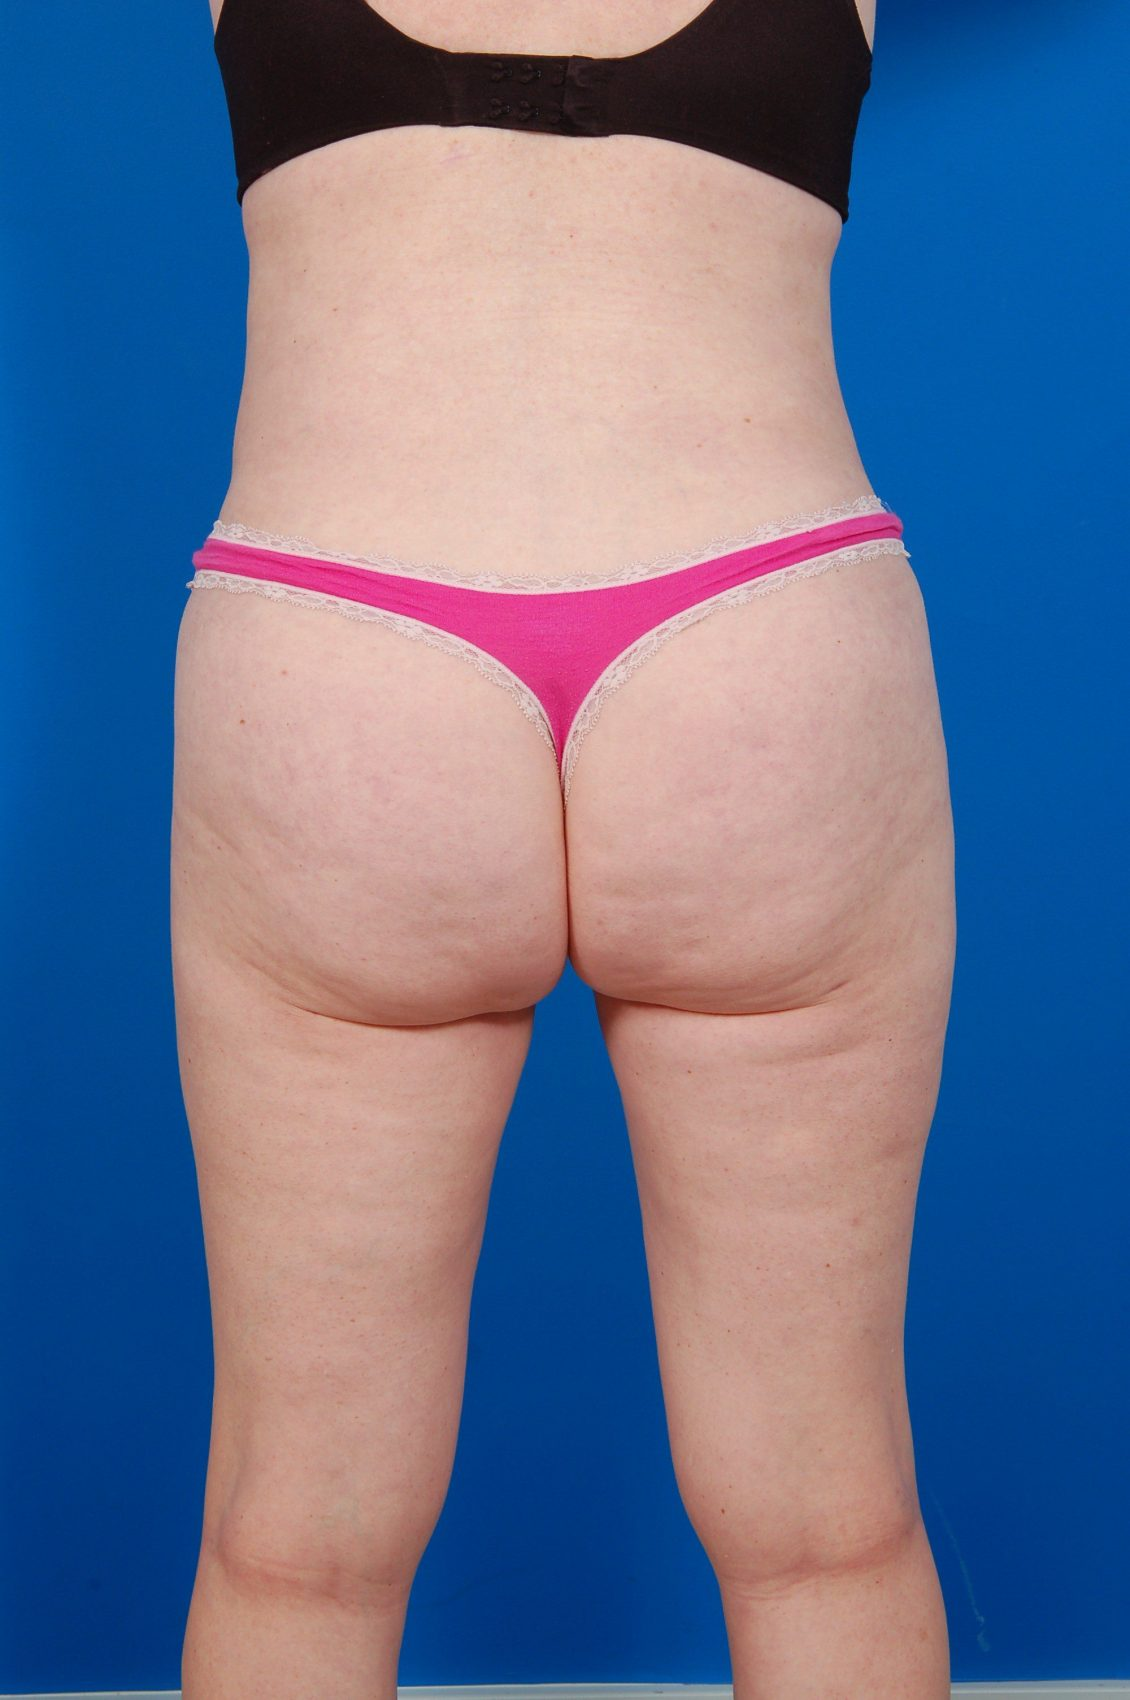 Tummy Tuck Photos: Case 11 - After 1 Year